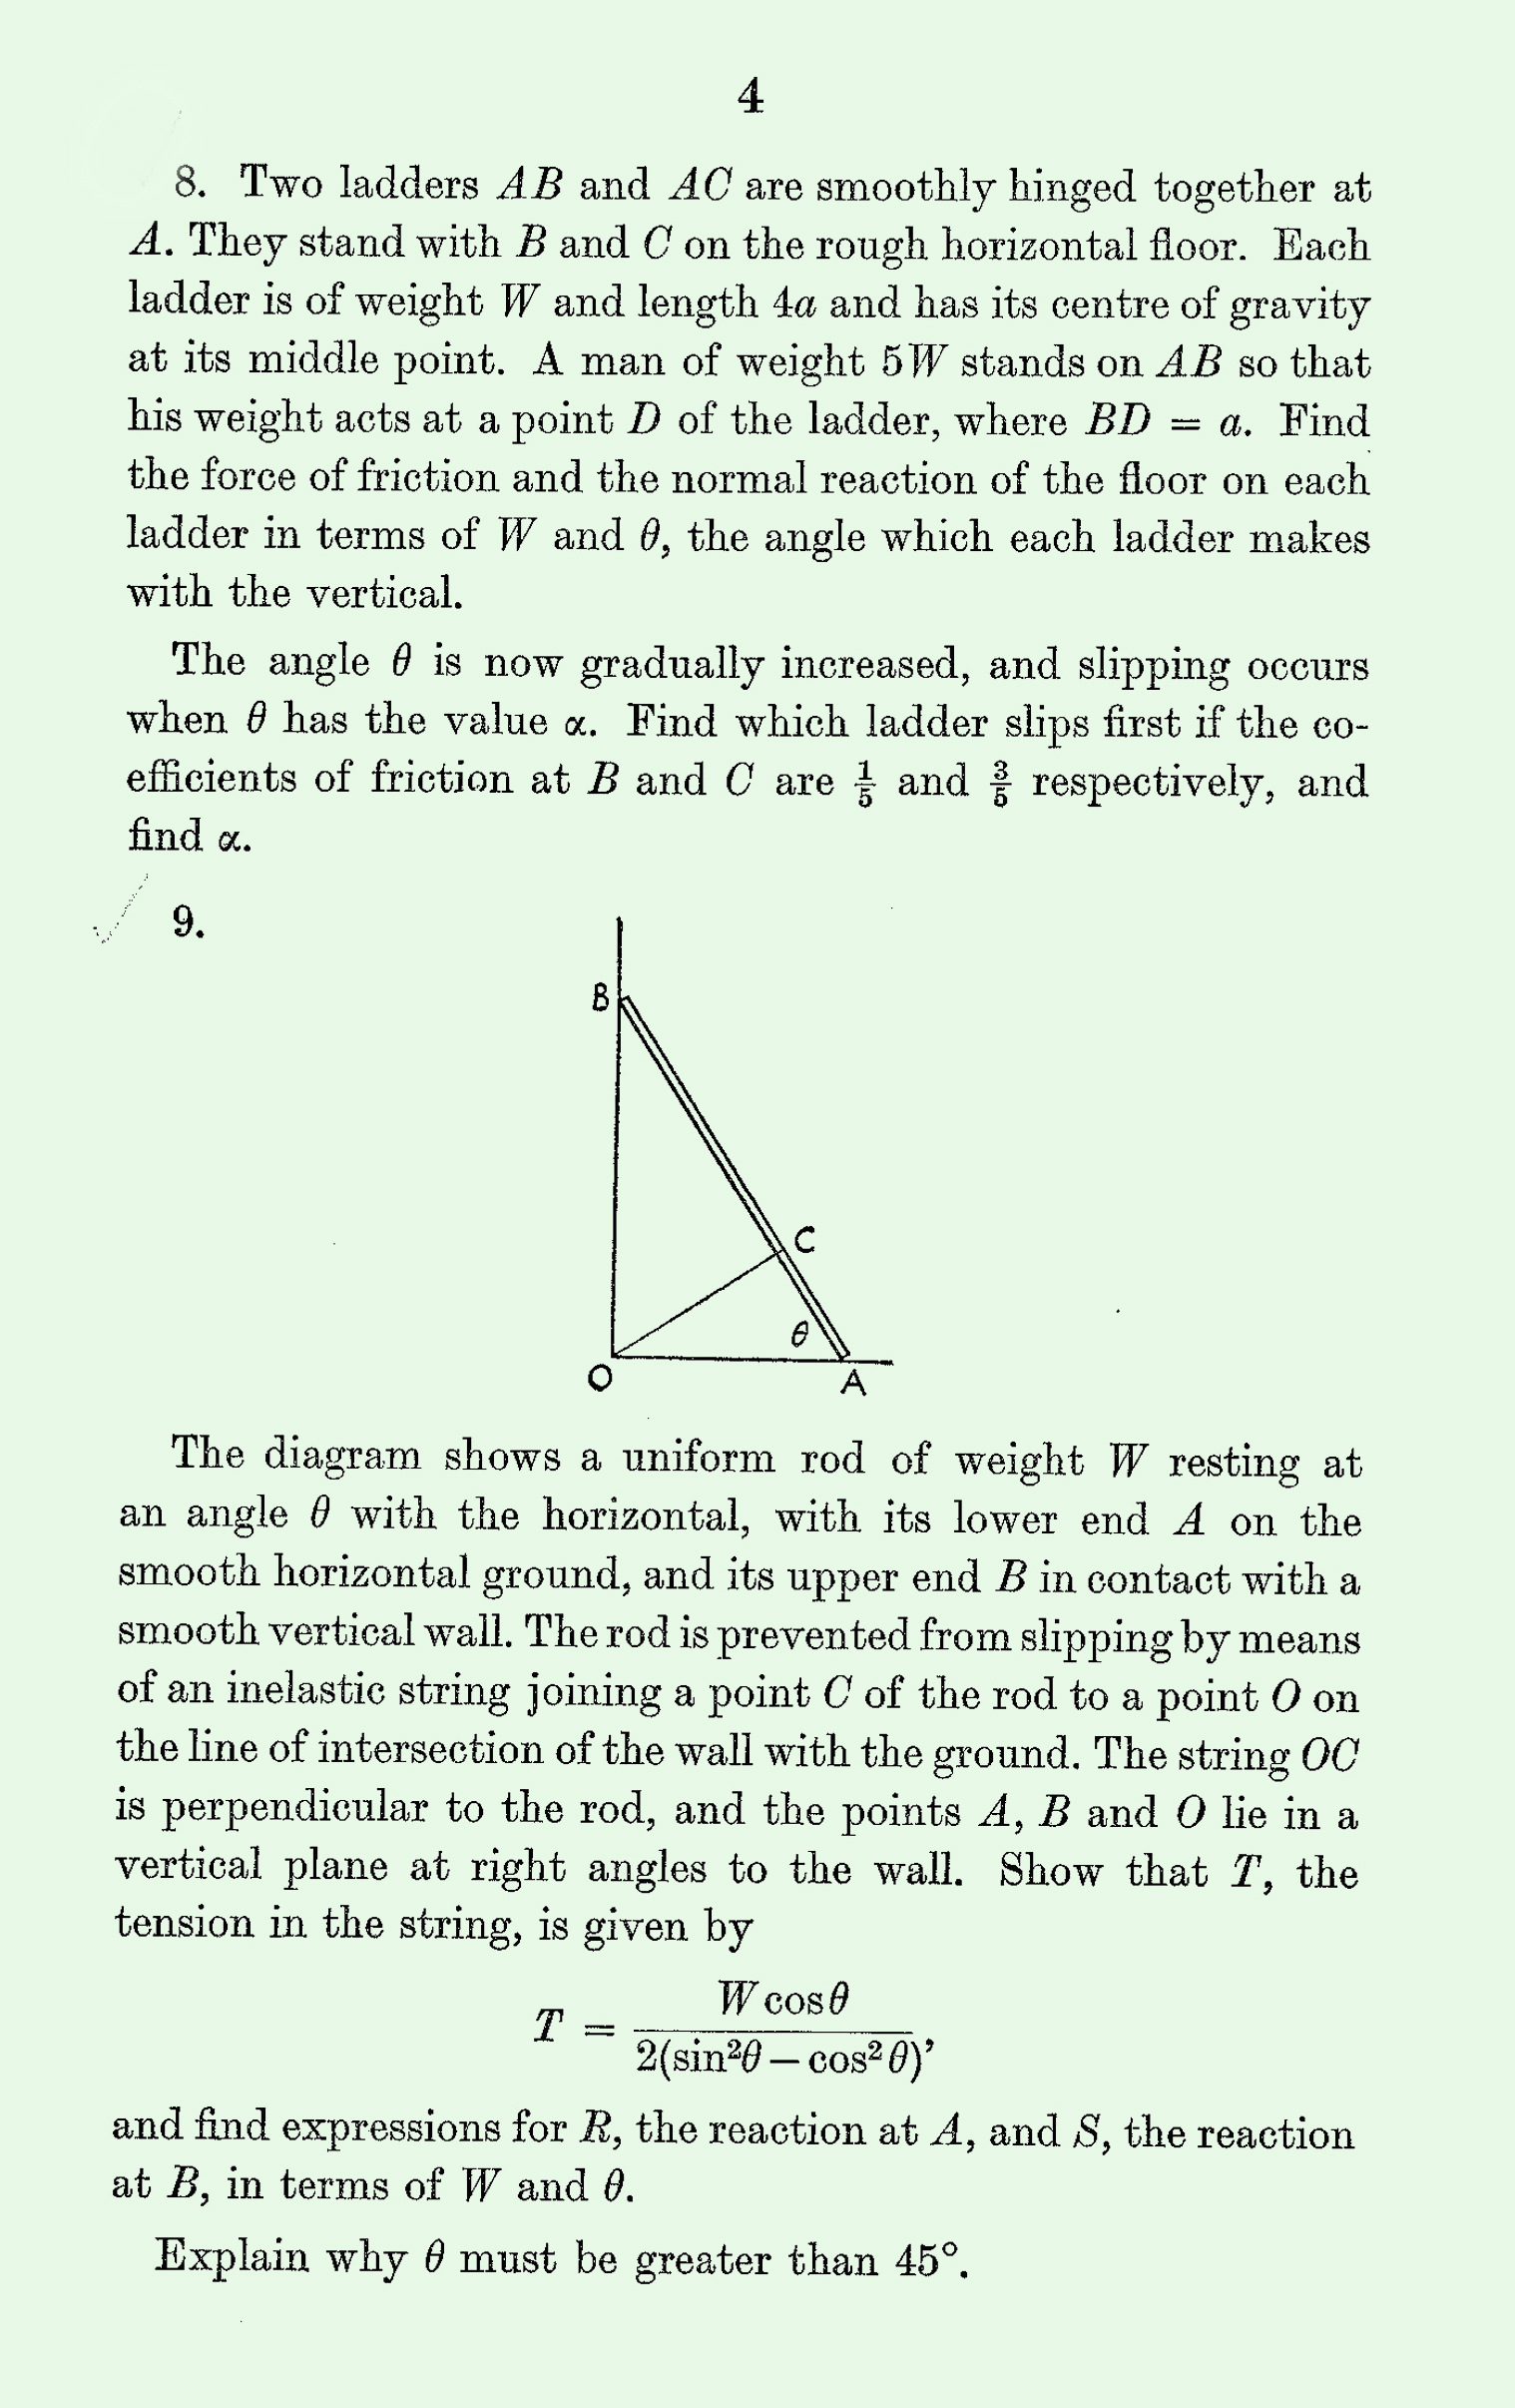 1963 Applied Mathematics A Level & S Level Paper I page 4